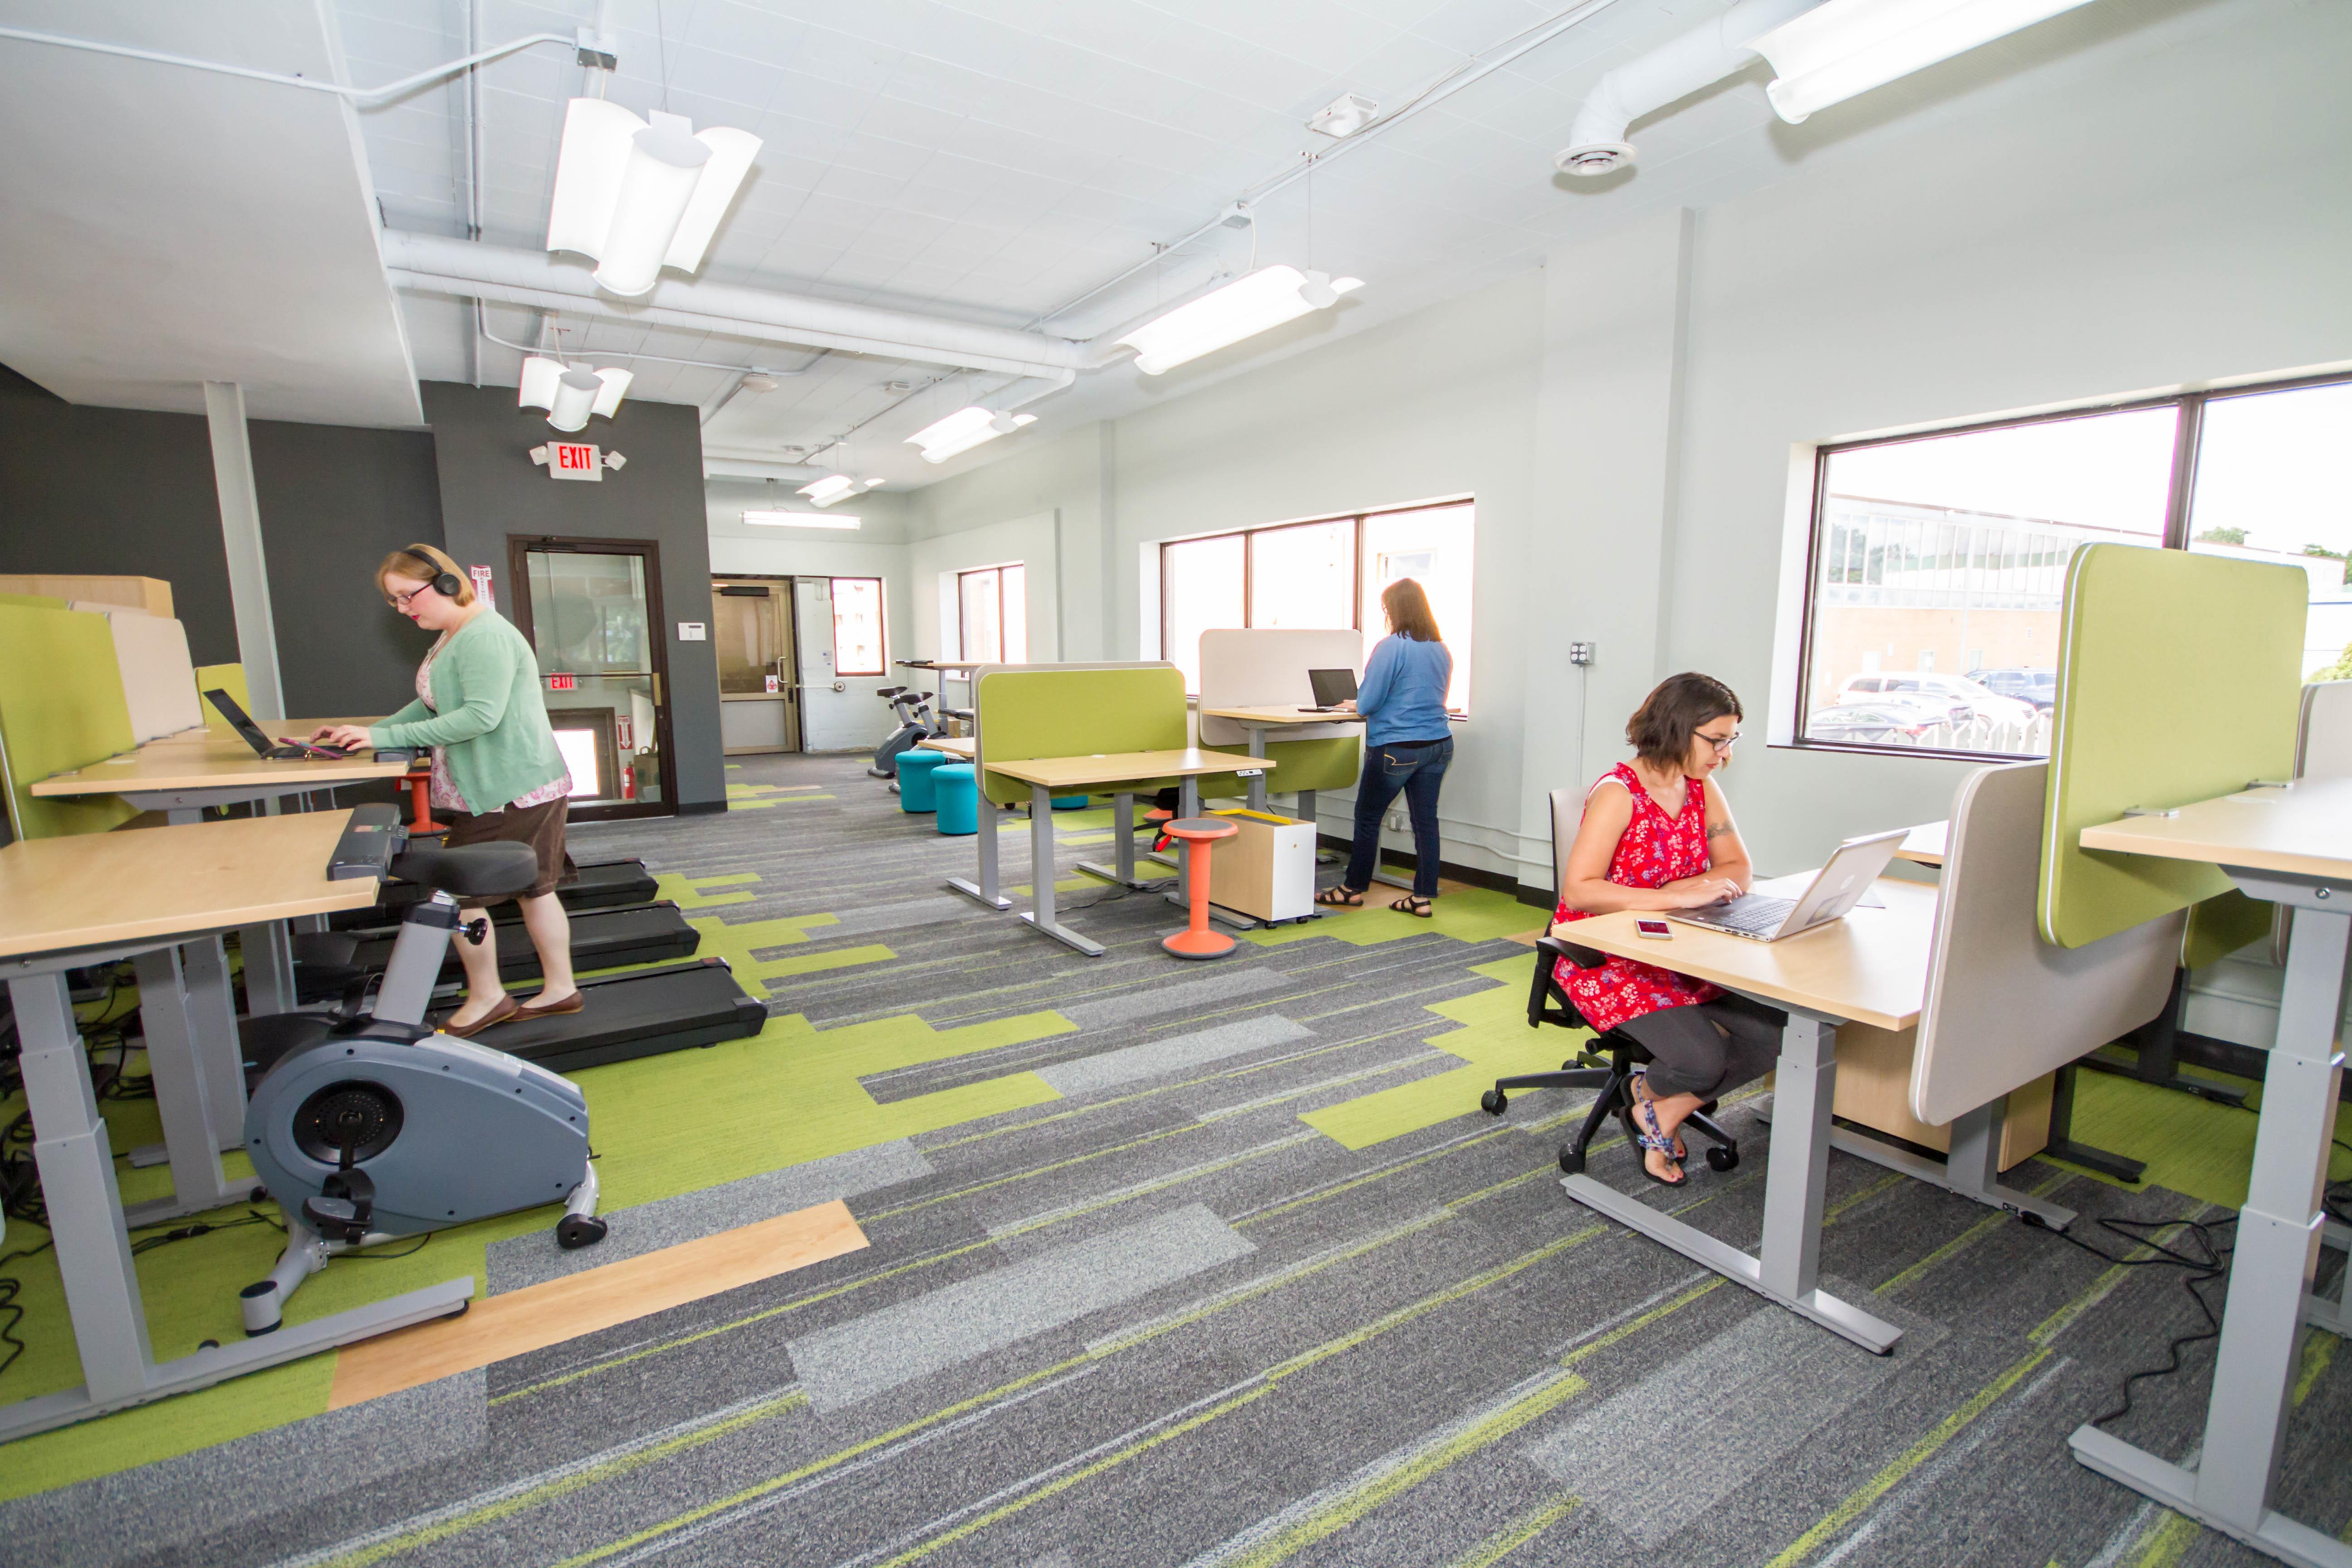 Work it Coworking - Desk @ Fitness integrated coworking